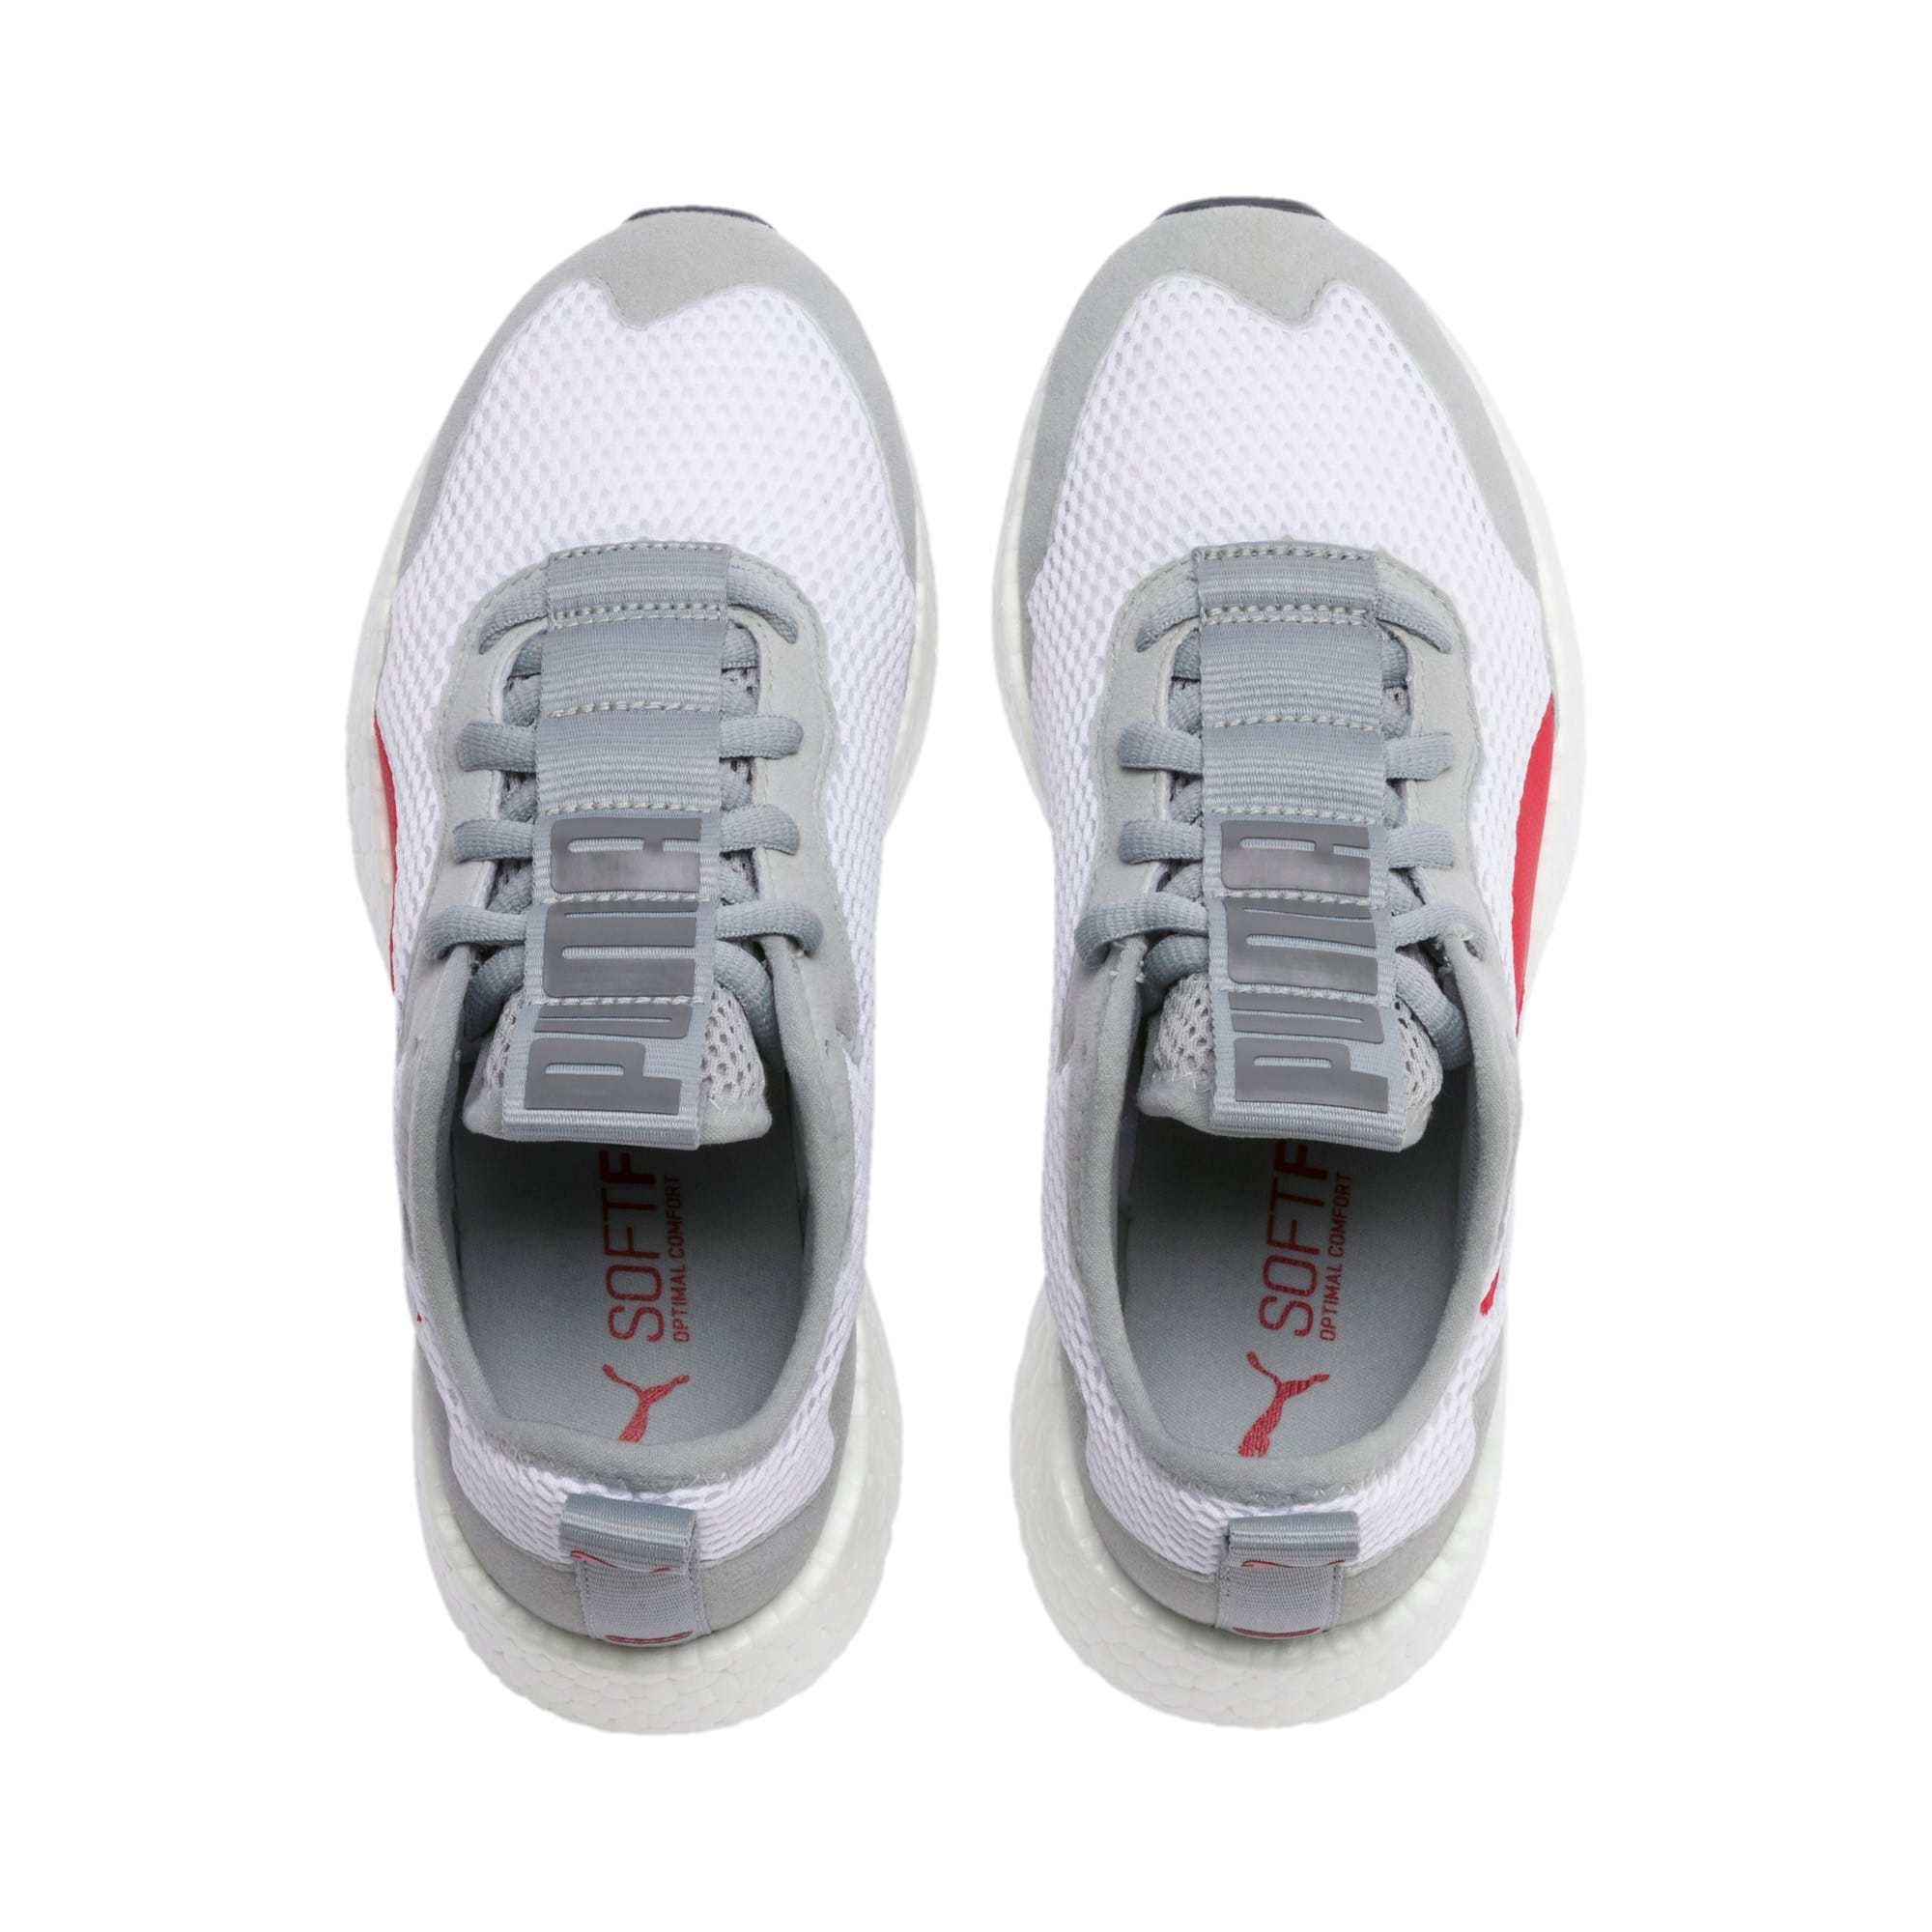 Thumbnail 6 of Chaussure de course NRGY Neko Skim Youth, White-H Rise-CASTLEROCK-Red, medium